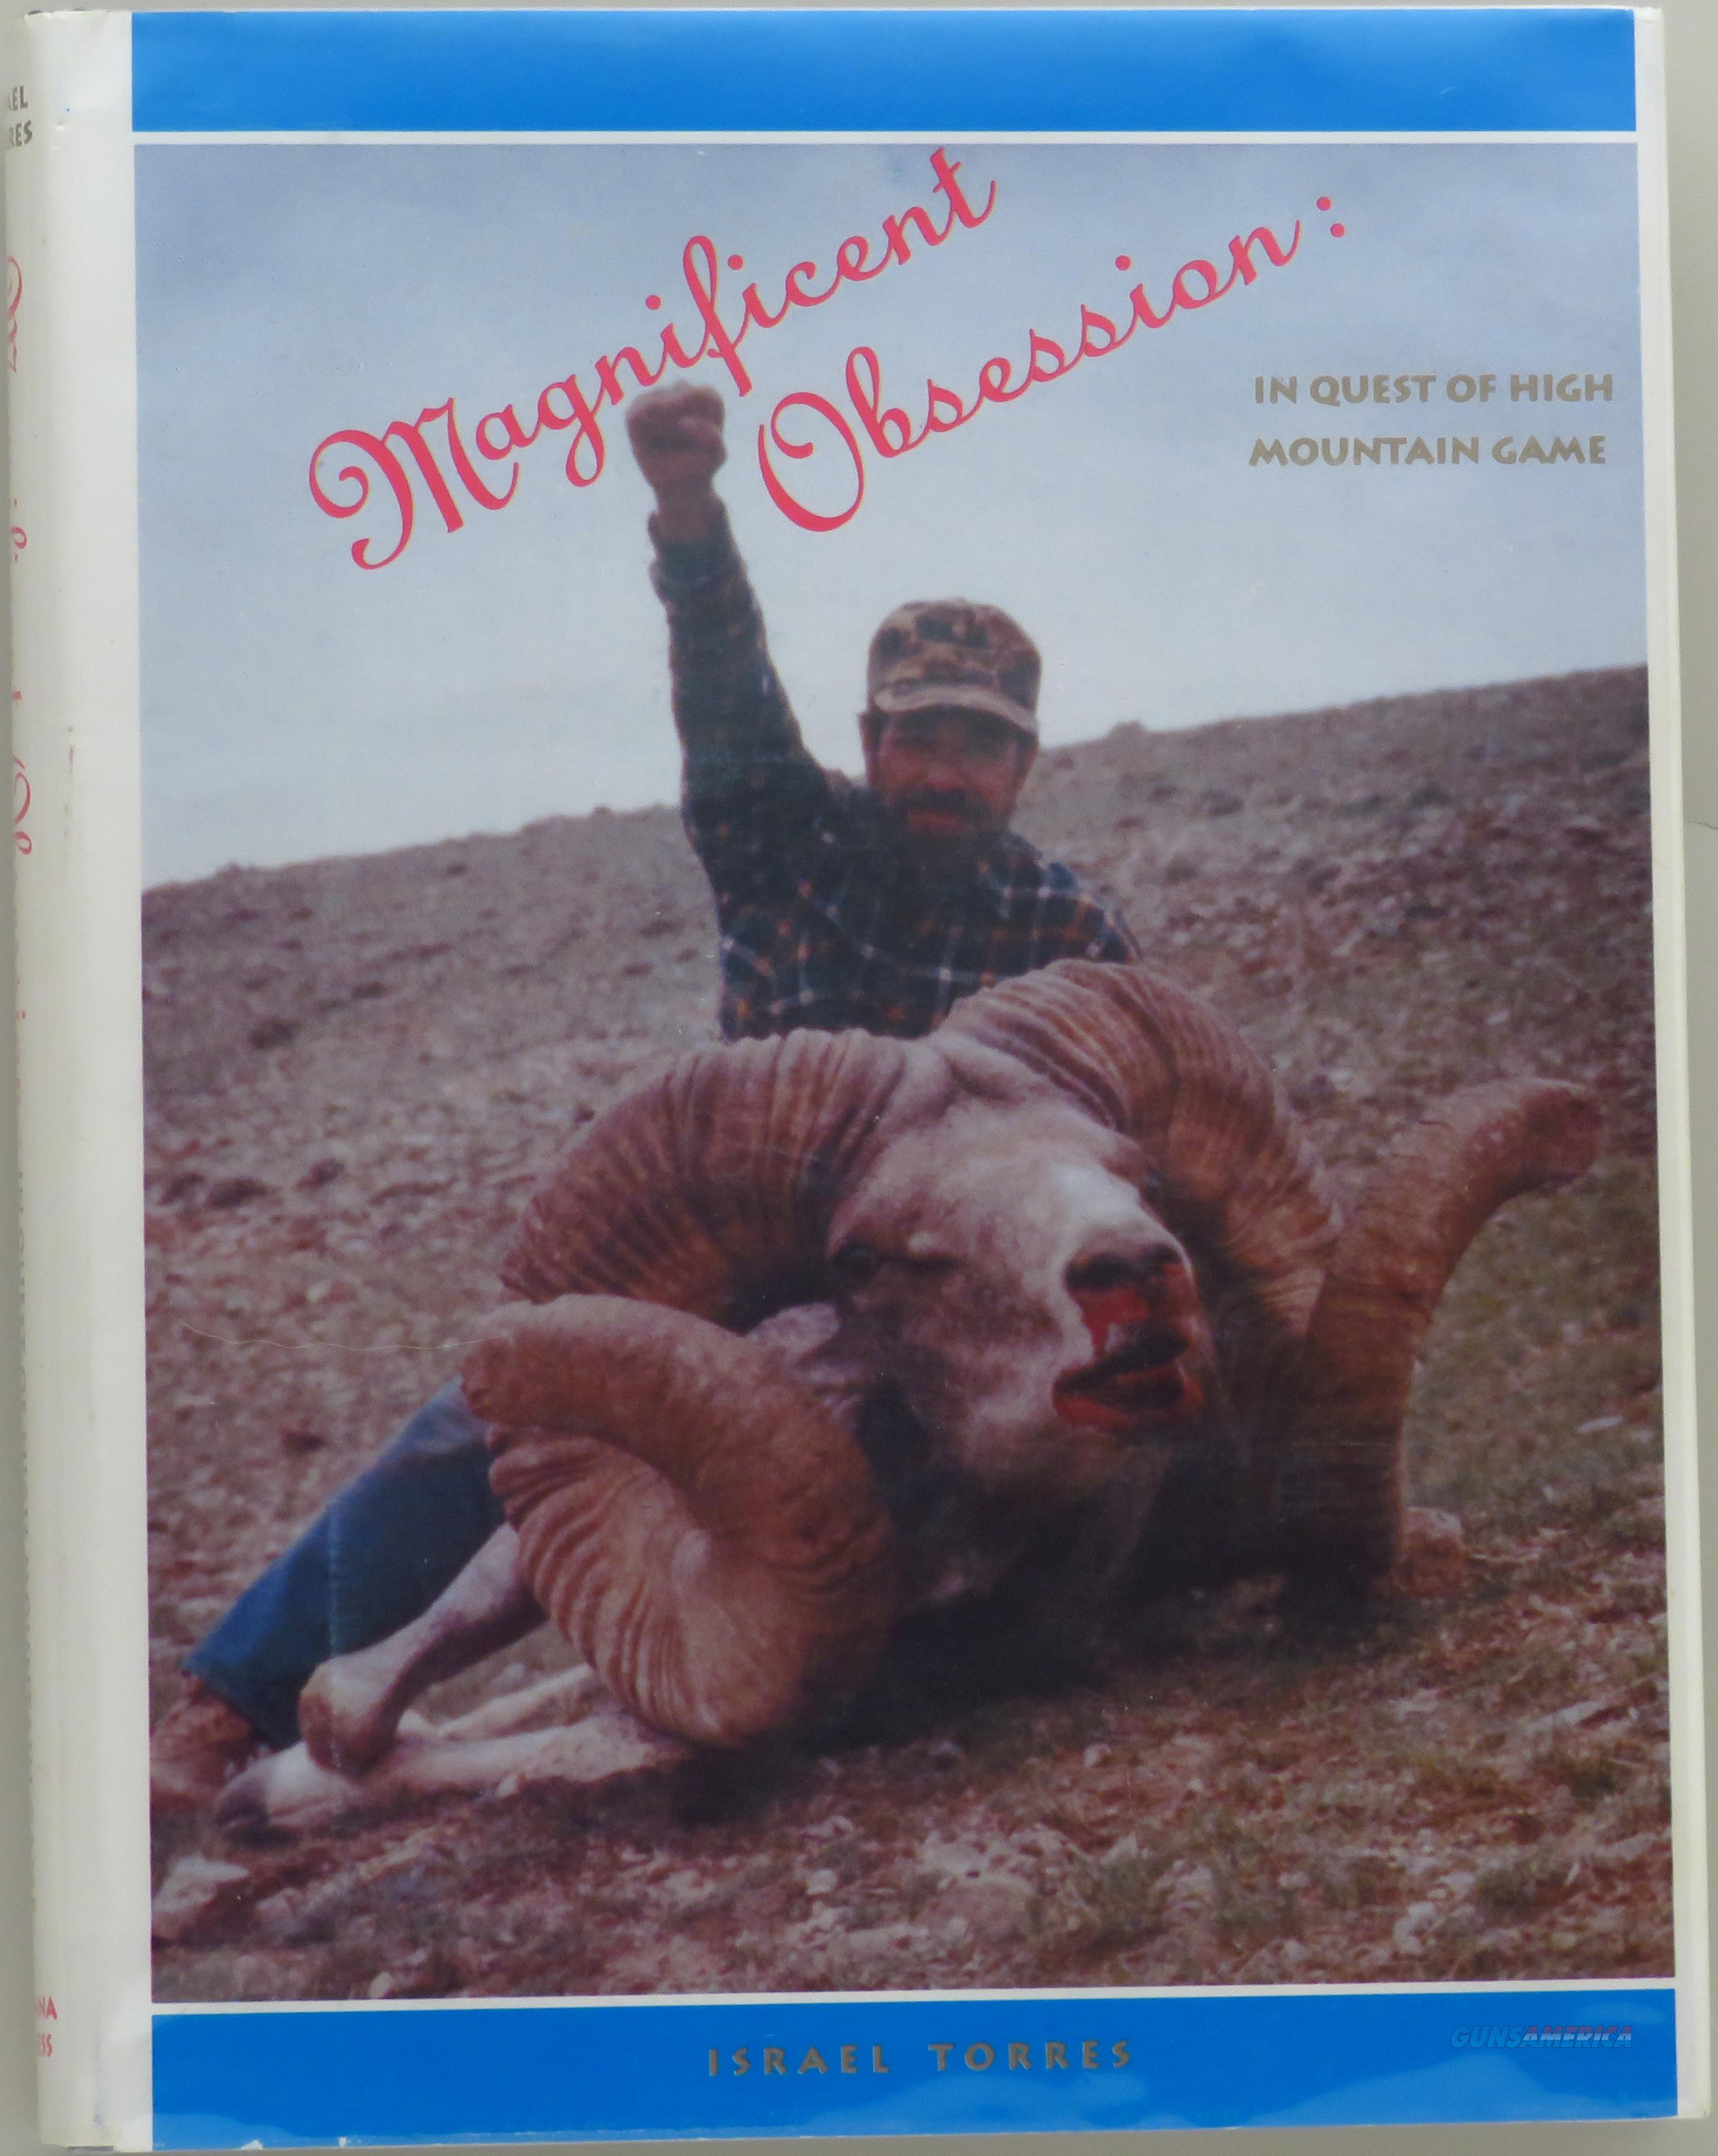 Magnificent Obsession by Israel Torres, limited, sheep hunting, 1990, signed  Non-Guns > Books & Magazines